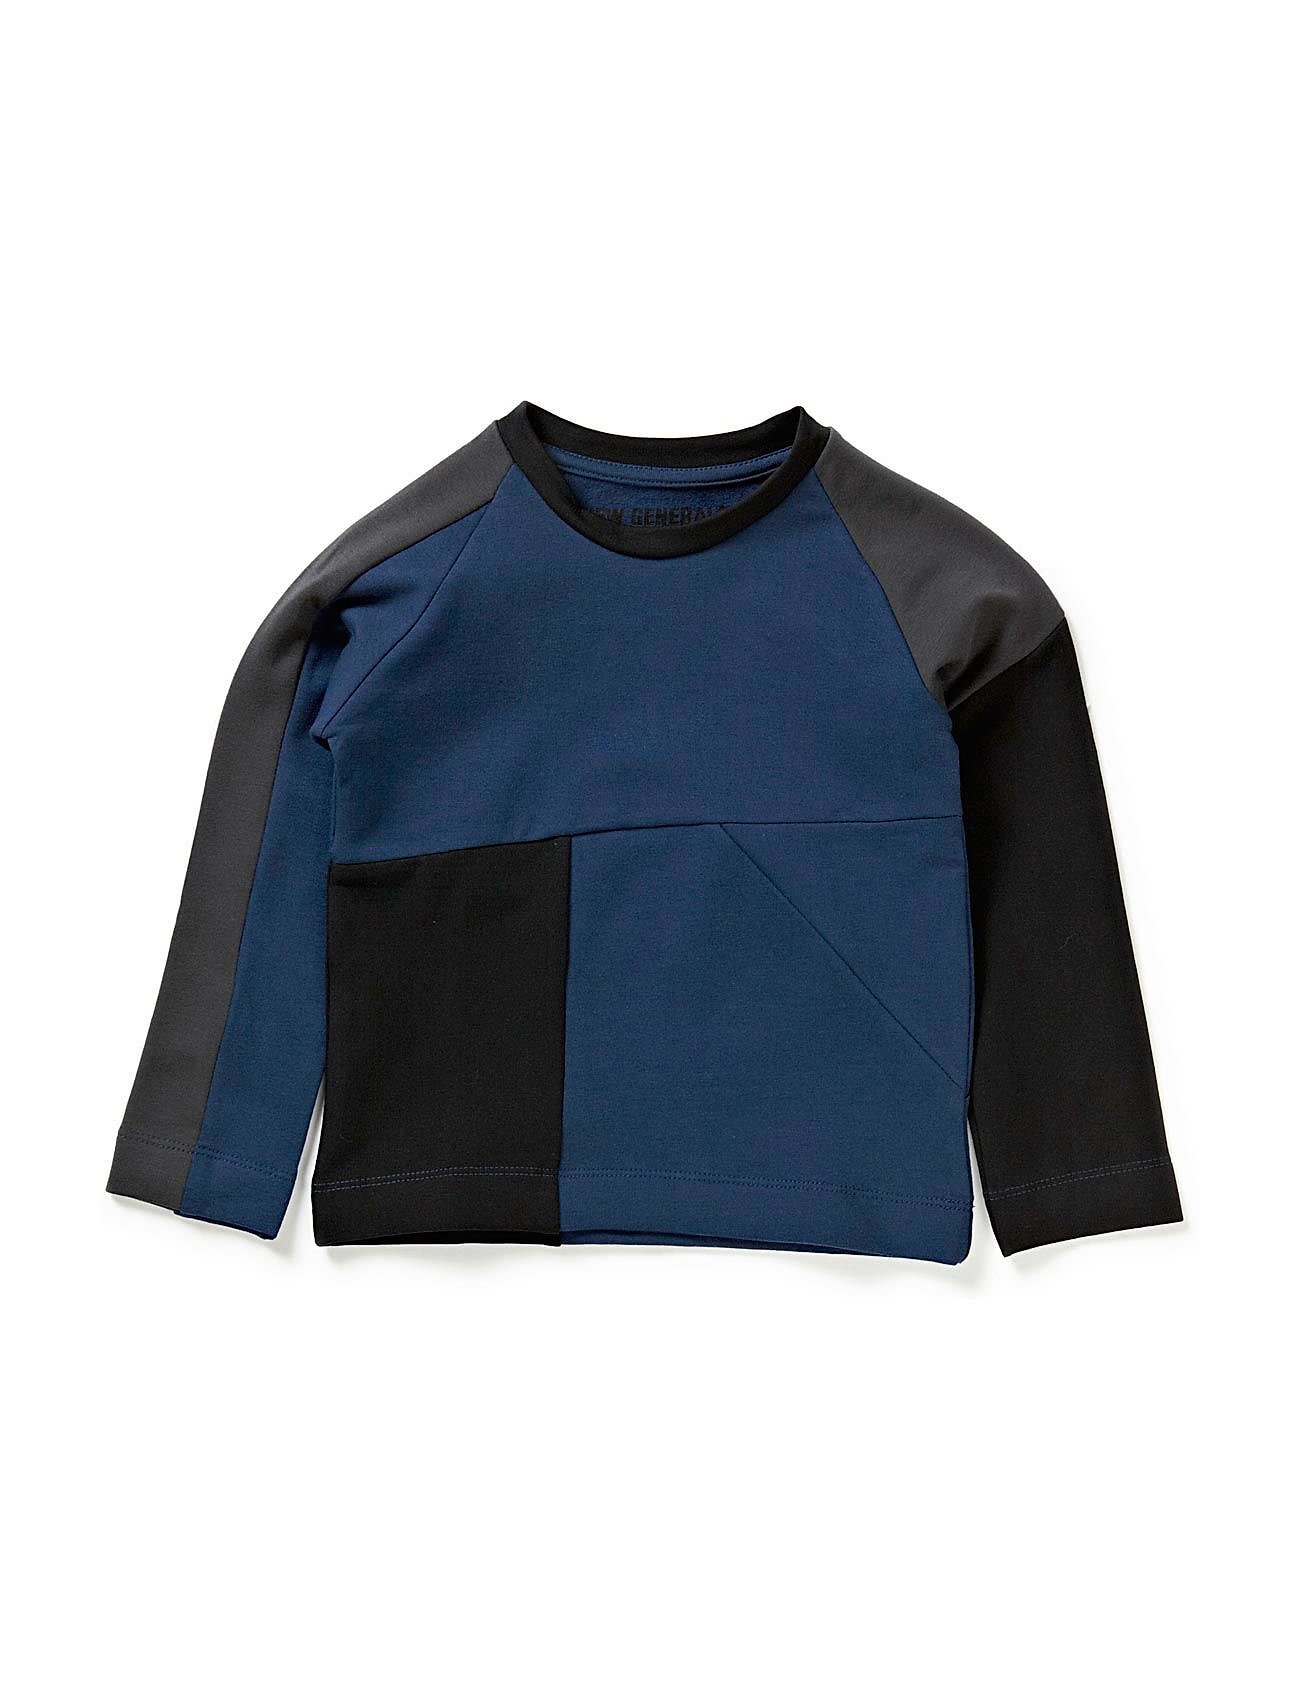 New Generals Panel Baby Sweatshirt - Blue/Grey/Black